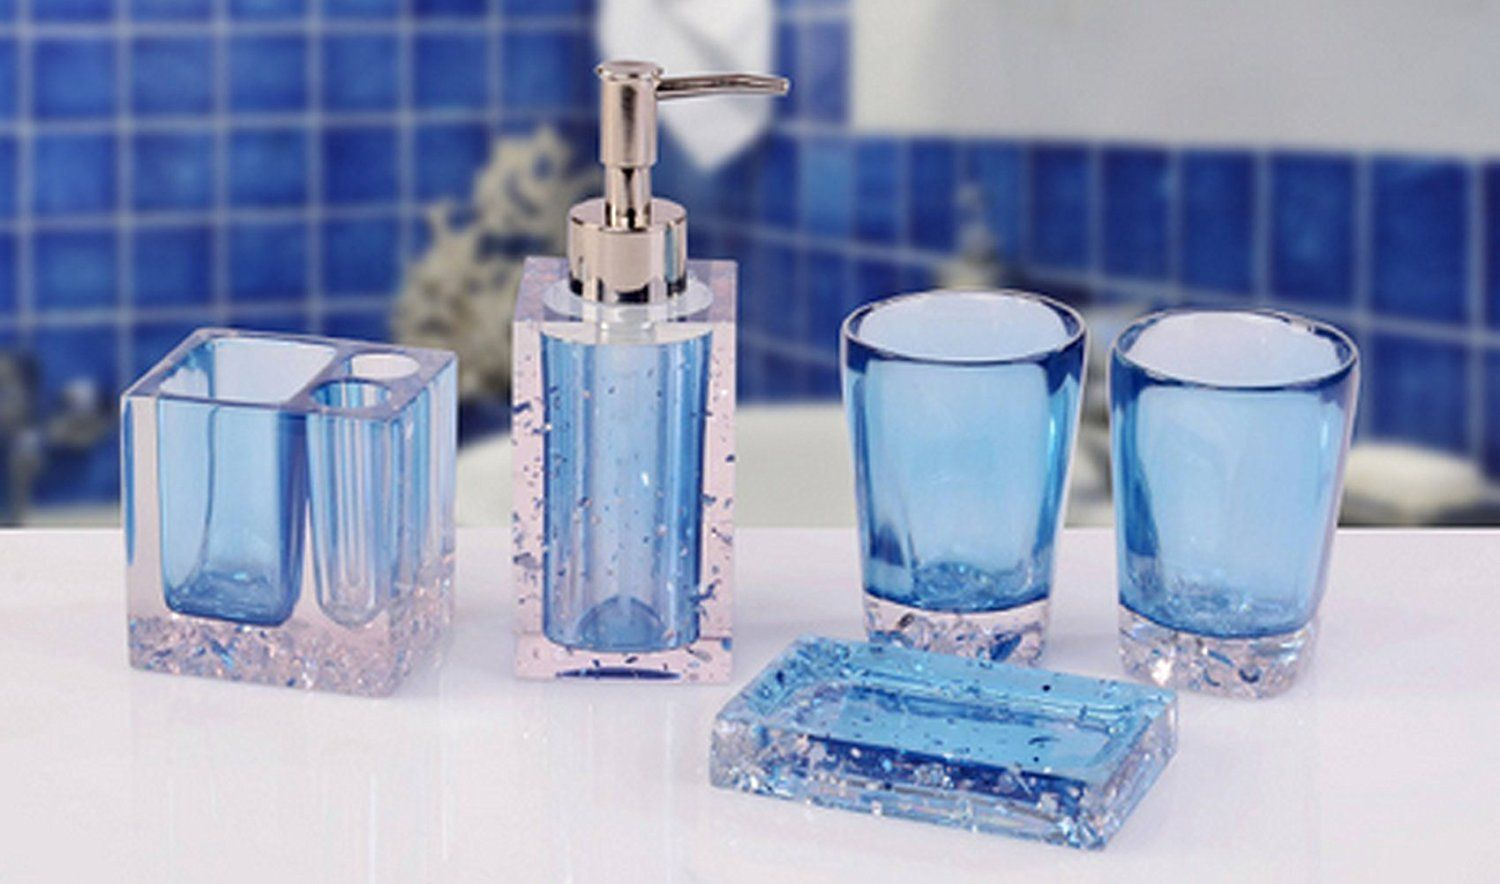 Amazon Com Amss 5 Piece Stunning Bathroom Accessories Set In Crystal Like Acrylic Tumbler Disp Bathroom Accessories Sets Acrylic Tumblers Bathroom Accessories